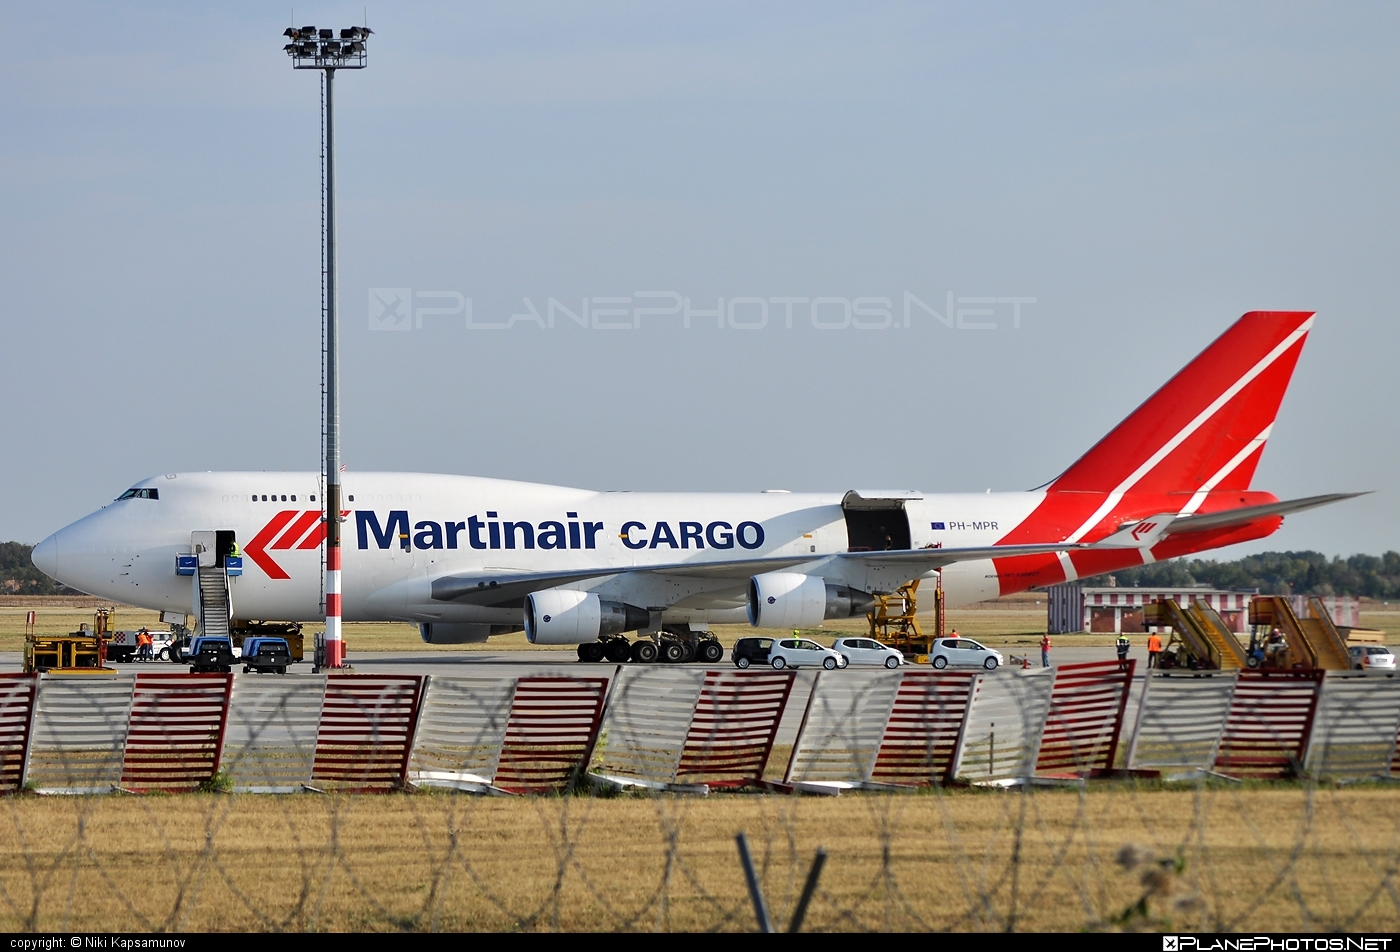 Boeing 747-400BCF - PH-MPR operated by Martinair Cargo #b747 #b747bcf #boeing #boeing747 #boeingconvertedfreighter #jumbo